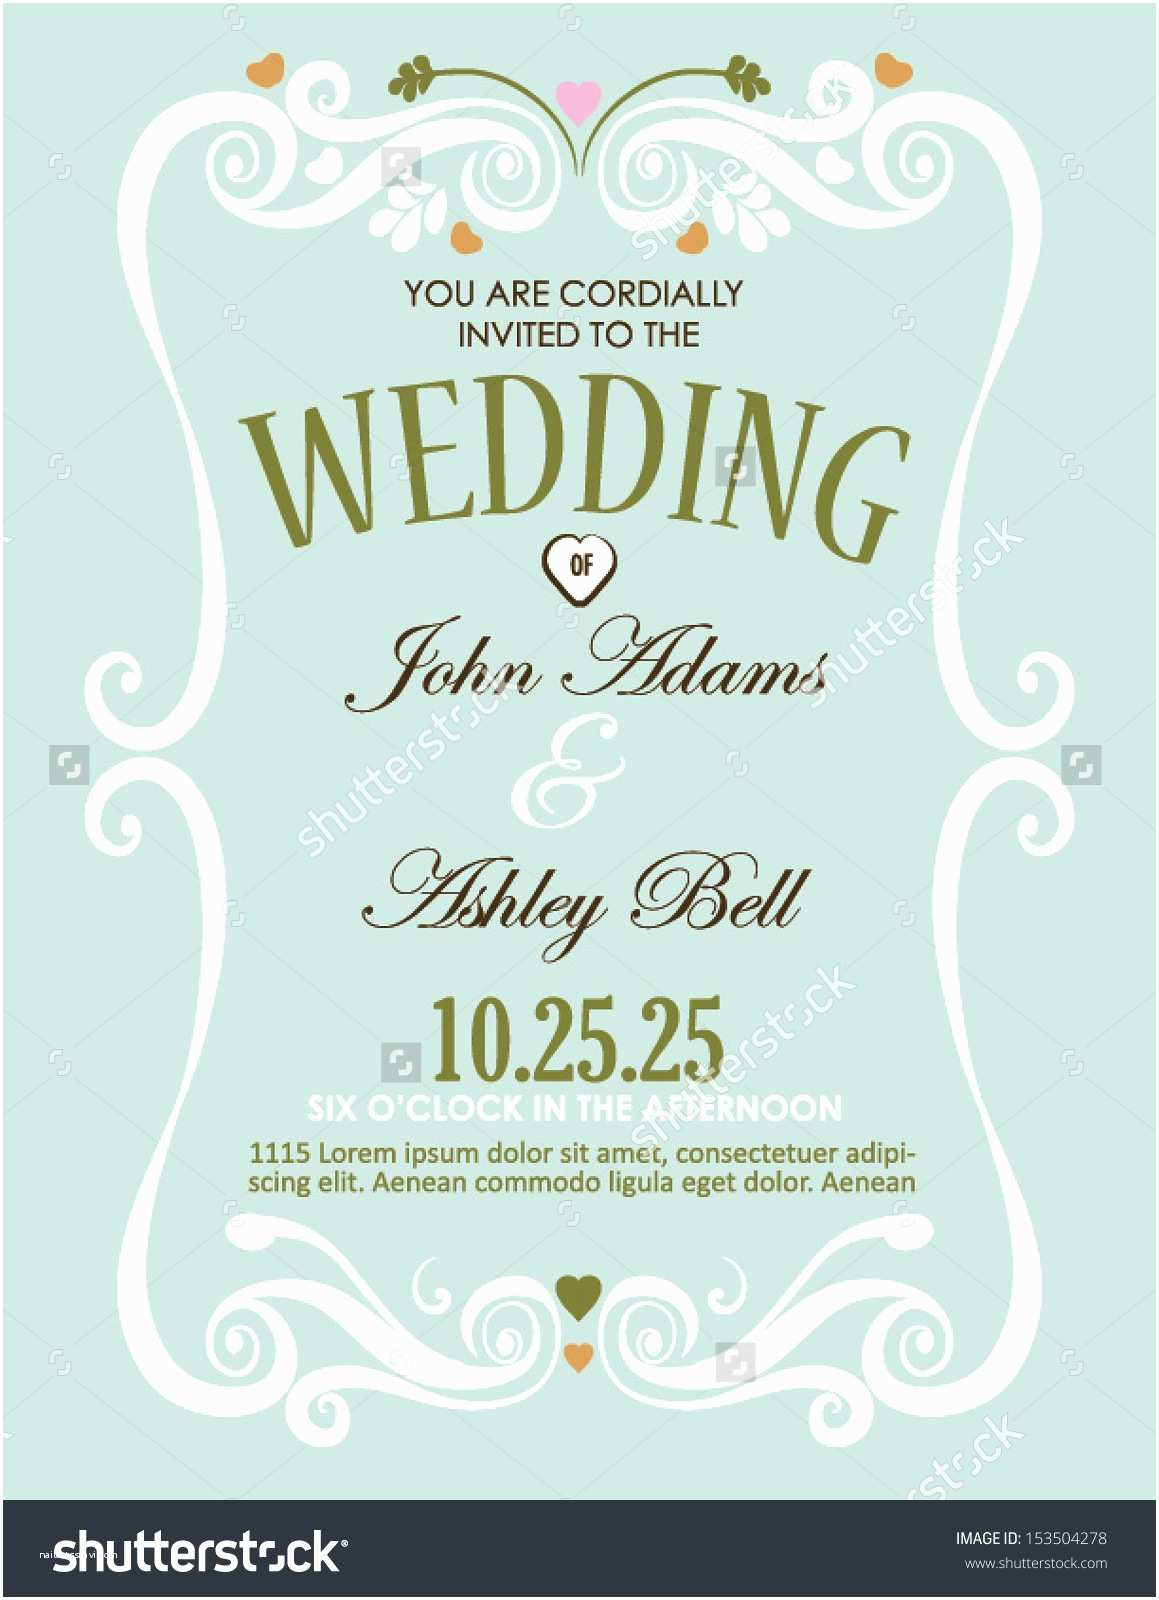 Wedding Invitation Designs Wedding Invitation Card